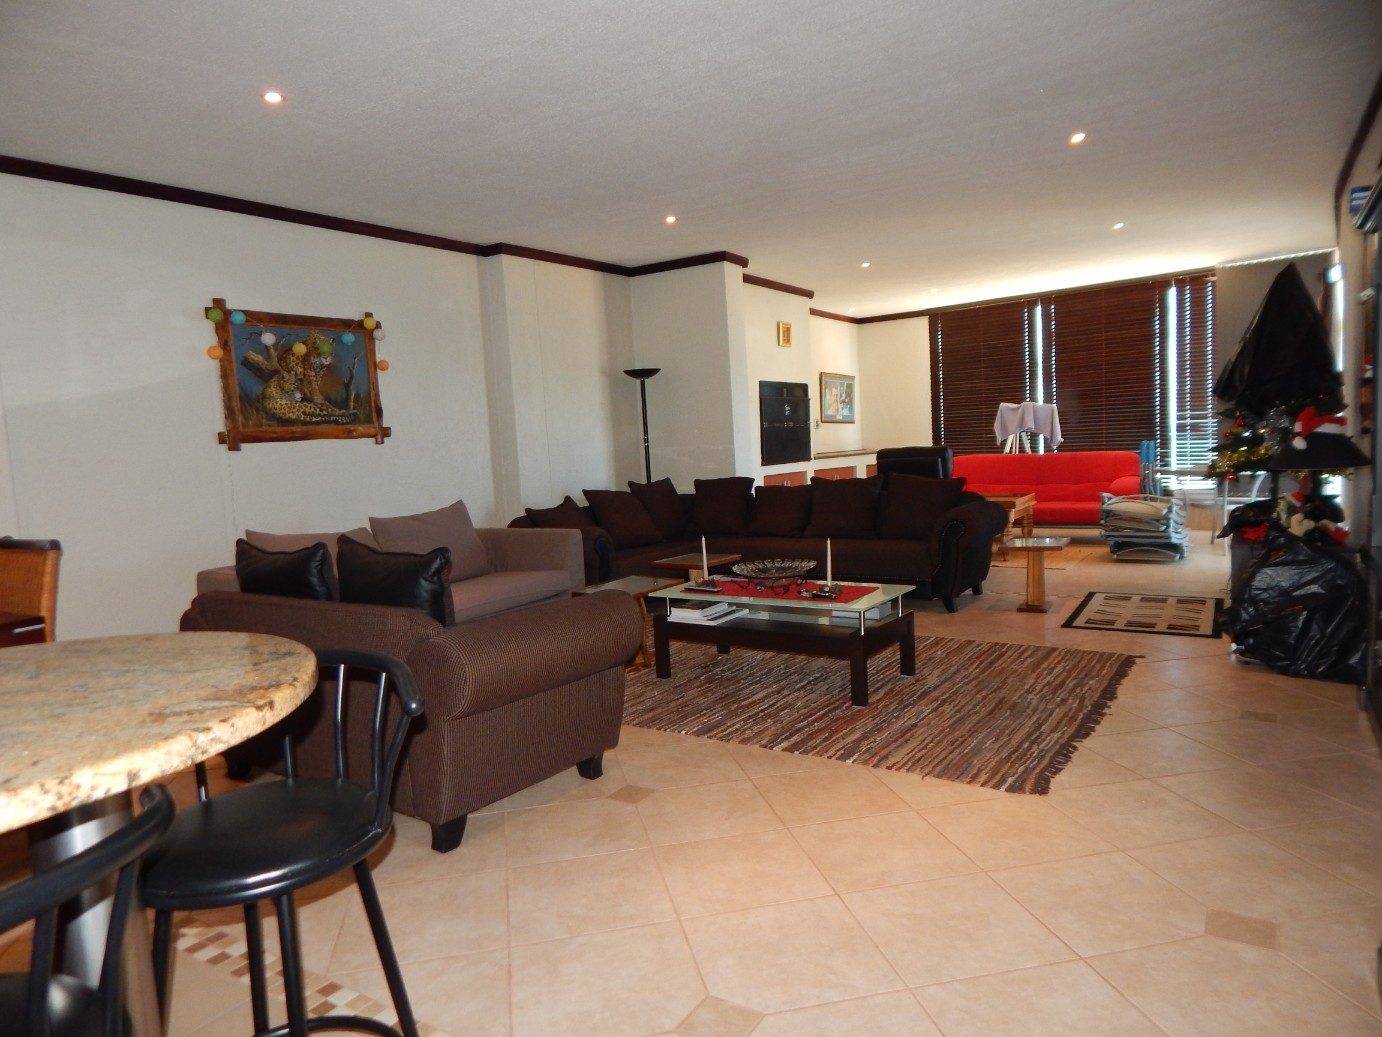 3 Bedroom Apartment for sale in Diaz Beach ENT0043723 : photo#19